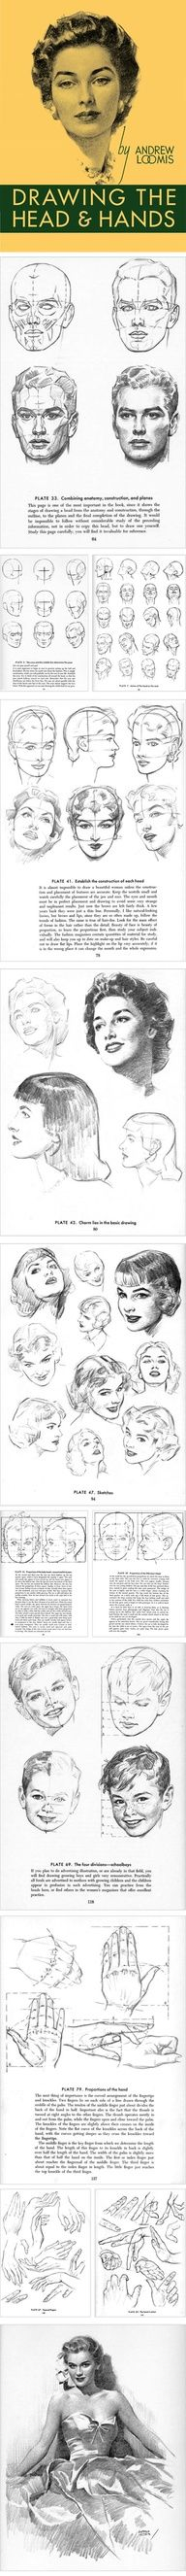 How to draw head and hands.